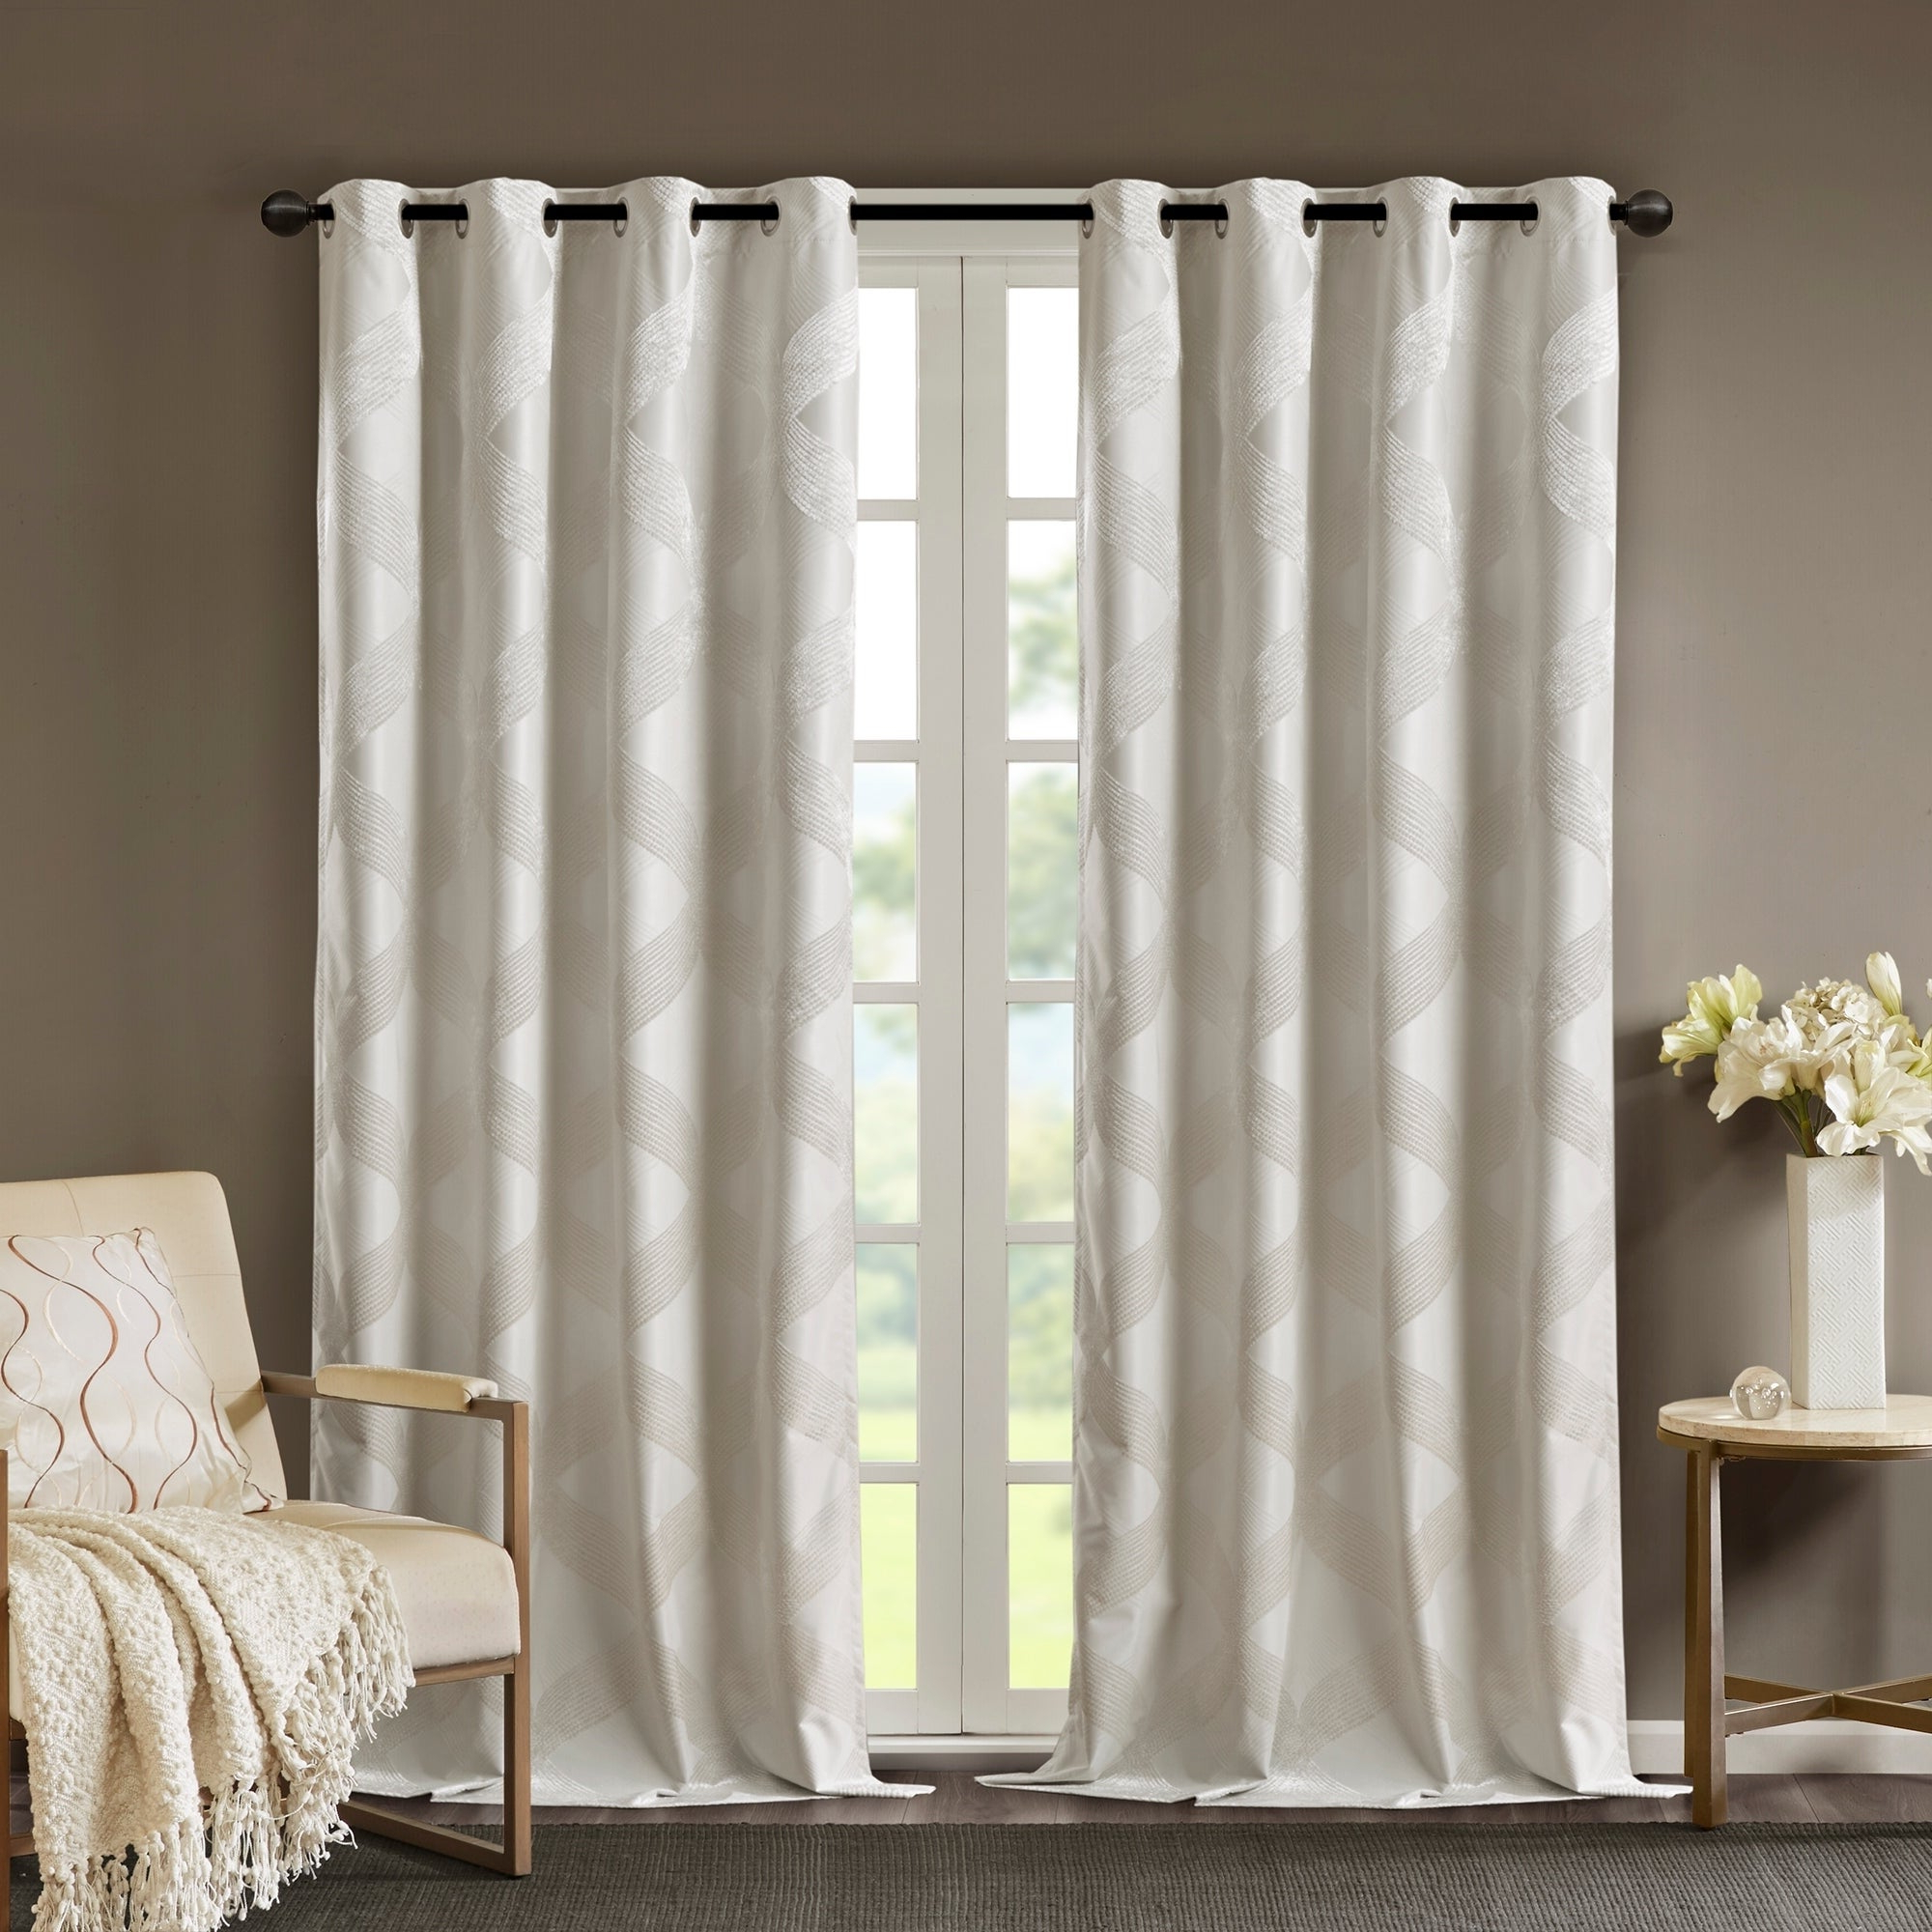 Sunsmart Abel Ogee Knitted Jacquard Total Blackout Curtain Panels In Preferred Sunsmart Abel Ogee Knitted Jacquard Total Blackout Curtain Panel (View 3 of 20)